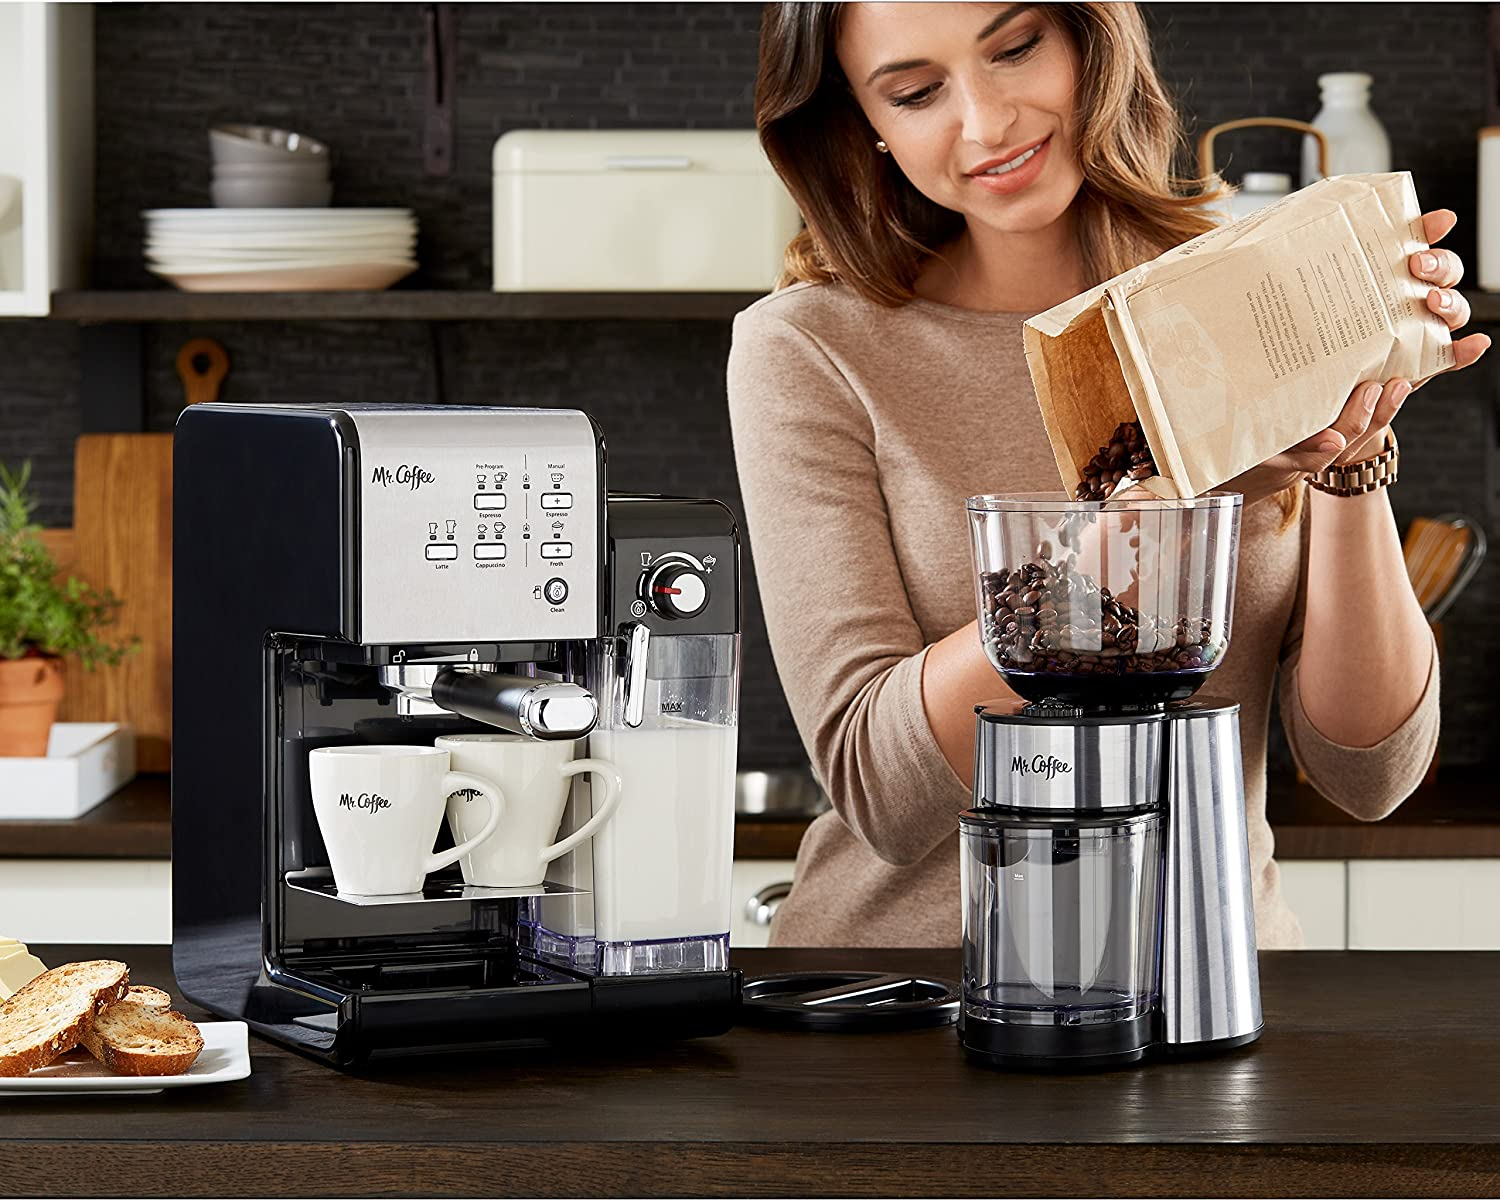 Best Espresso and Coffee Maker in 2020: Reviews & Buying Guide 7